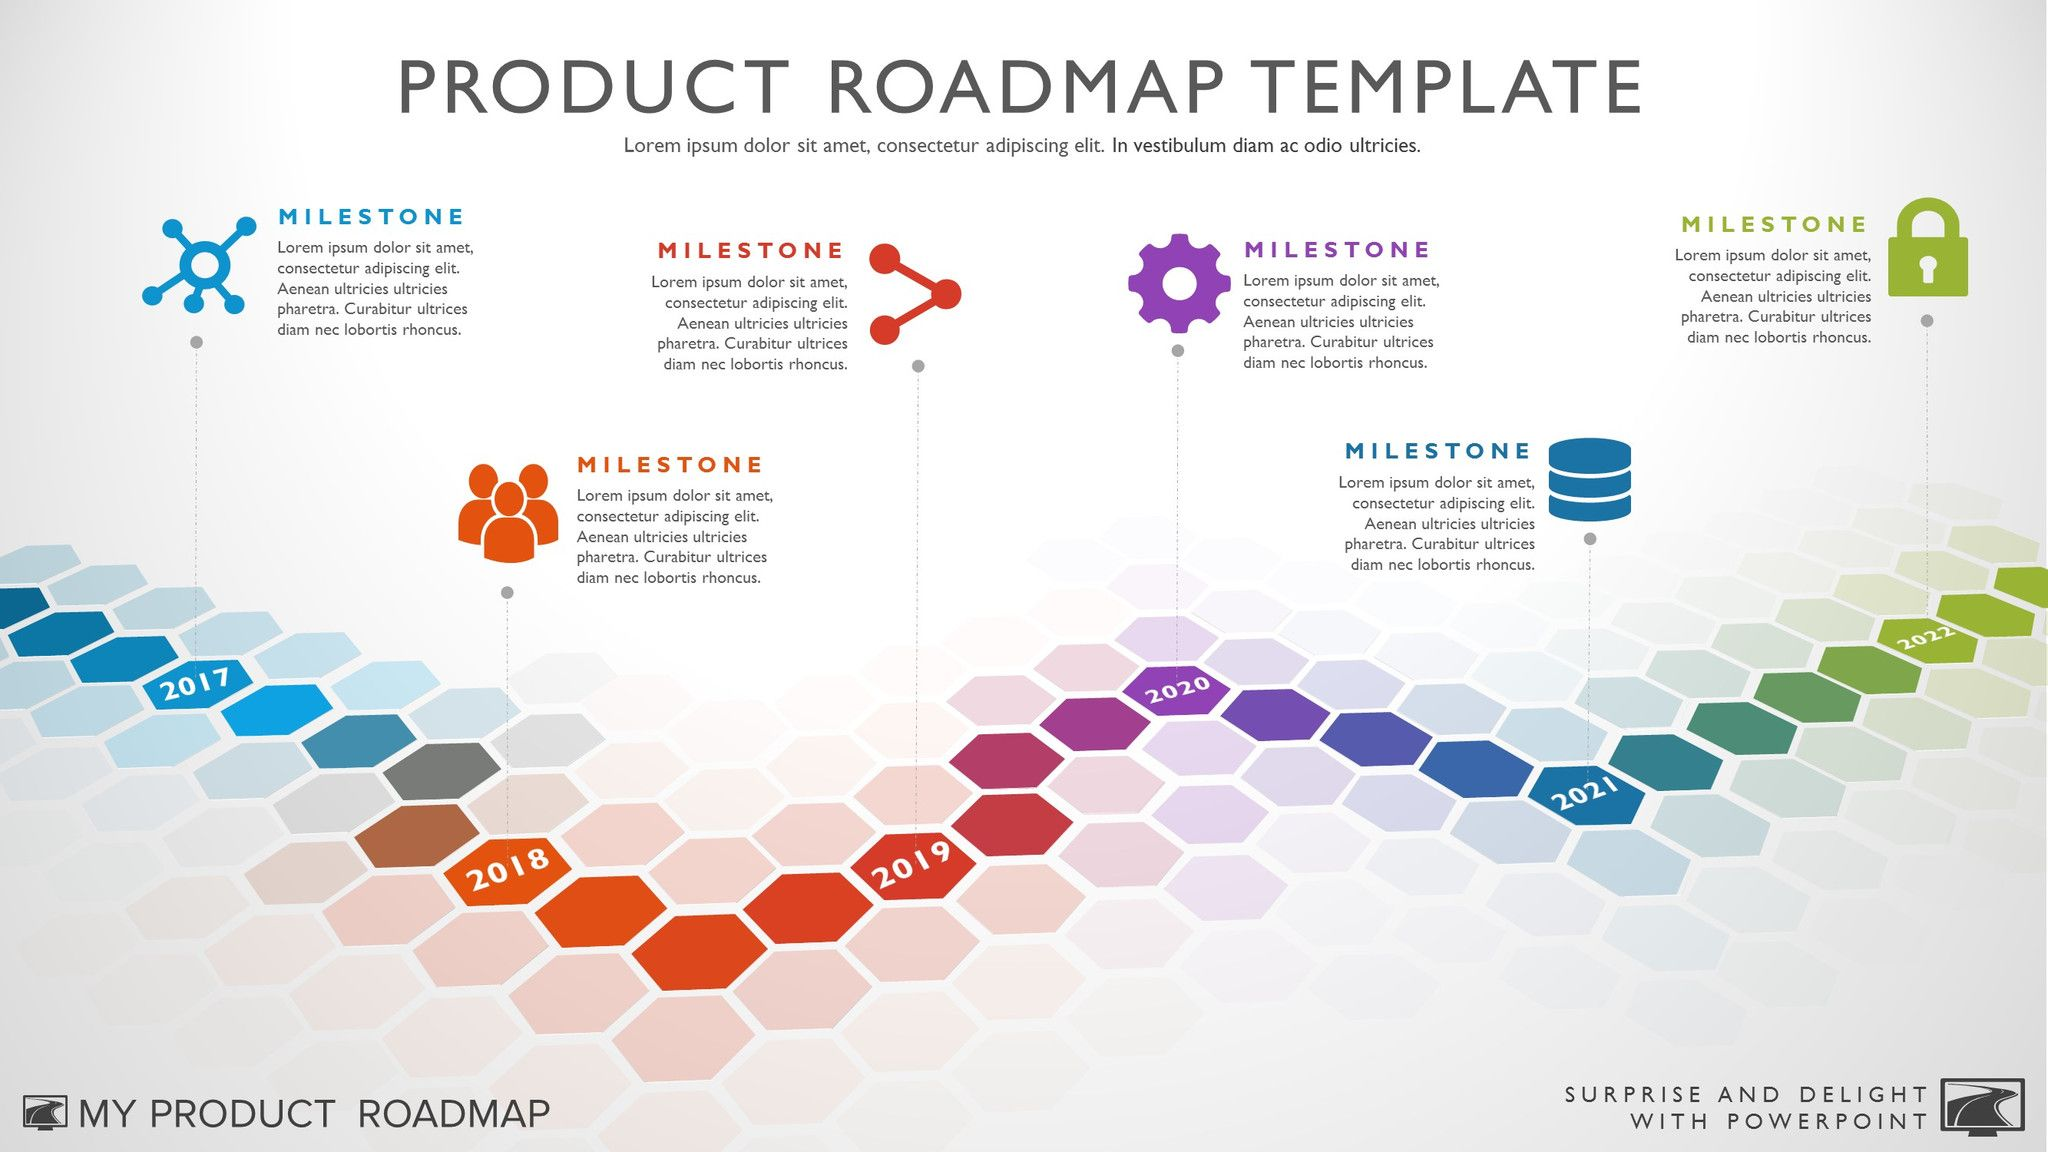 powerpoint roadmap timeline template images powerpoint template and layout. Black Bedroom Furniture Sets. Home Design Ideas